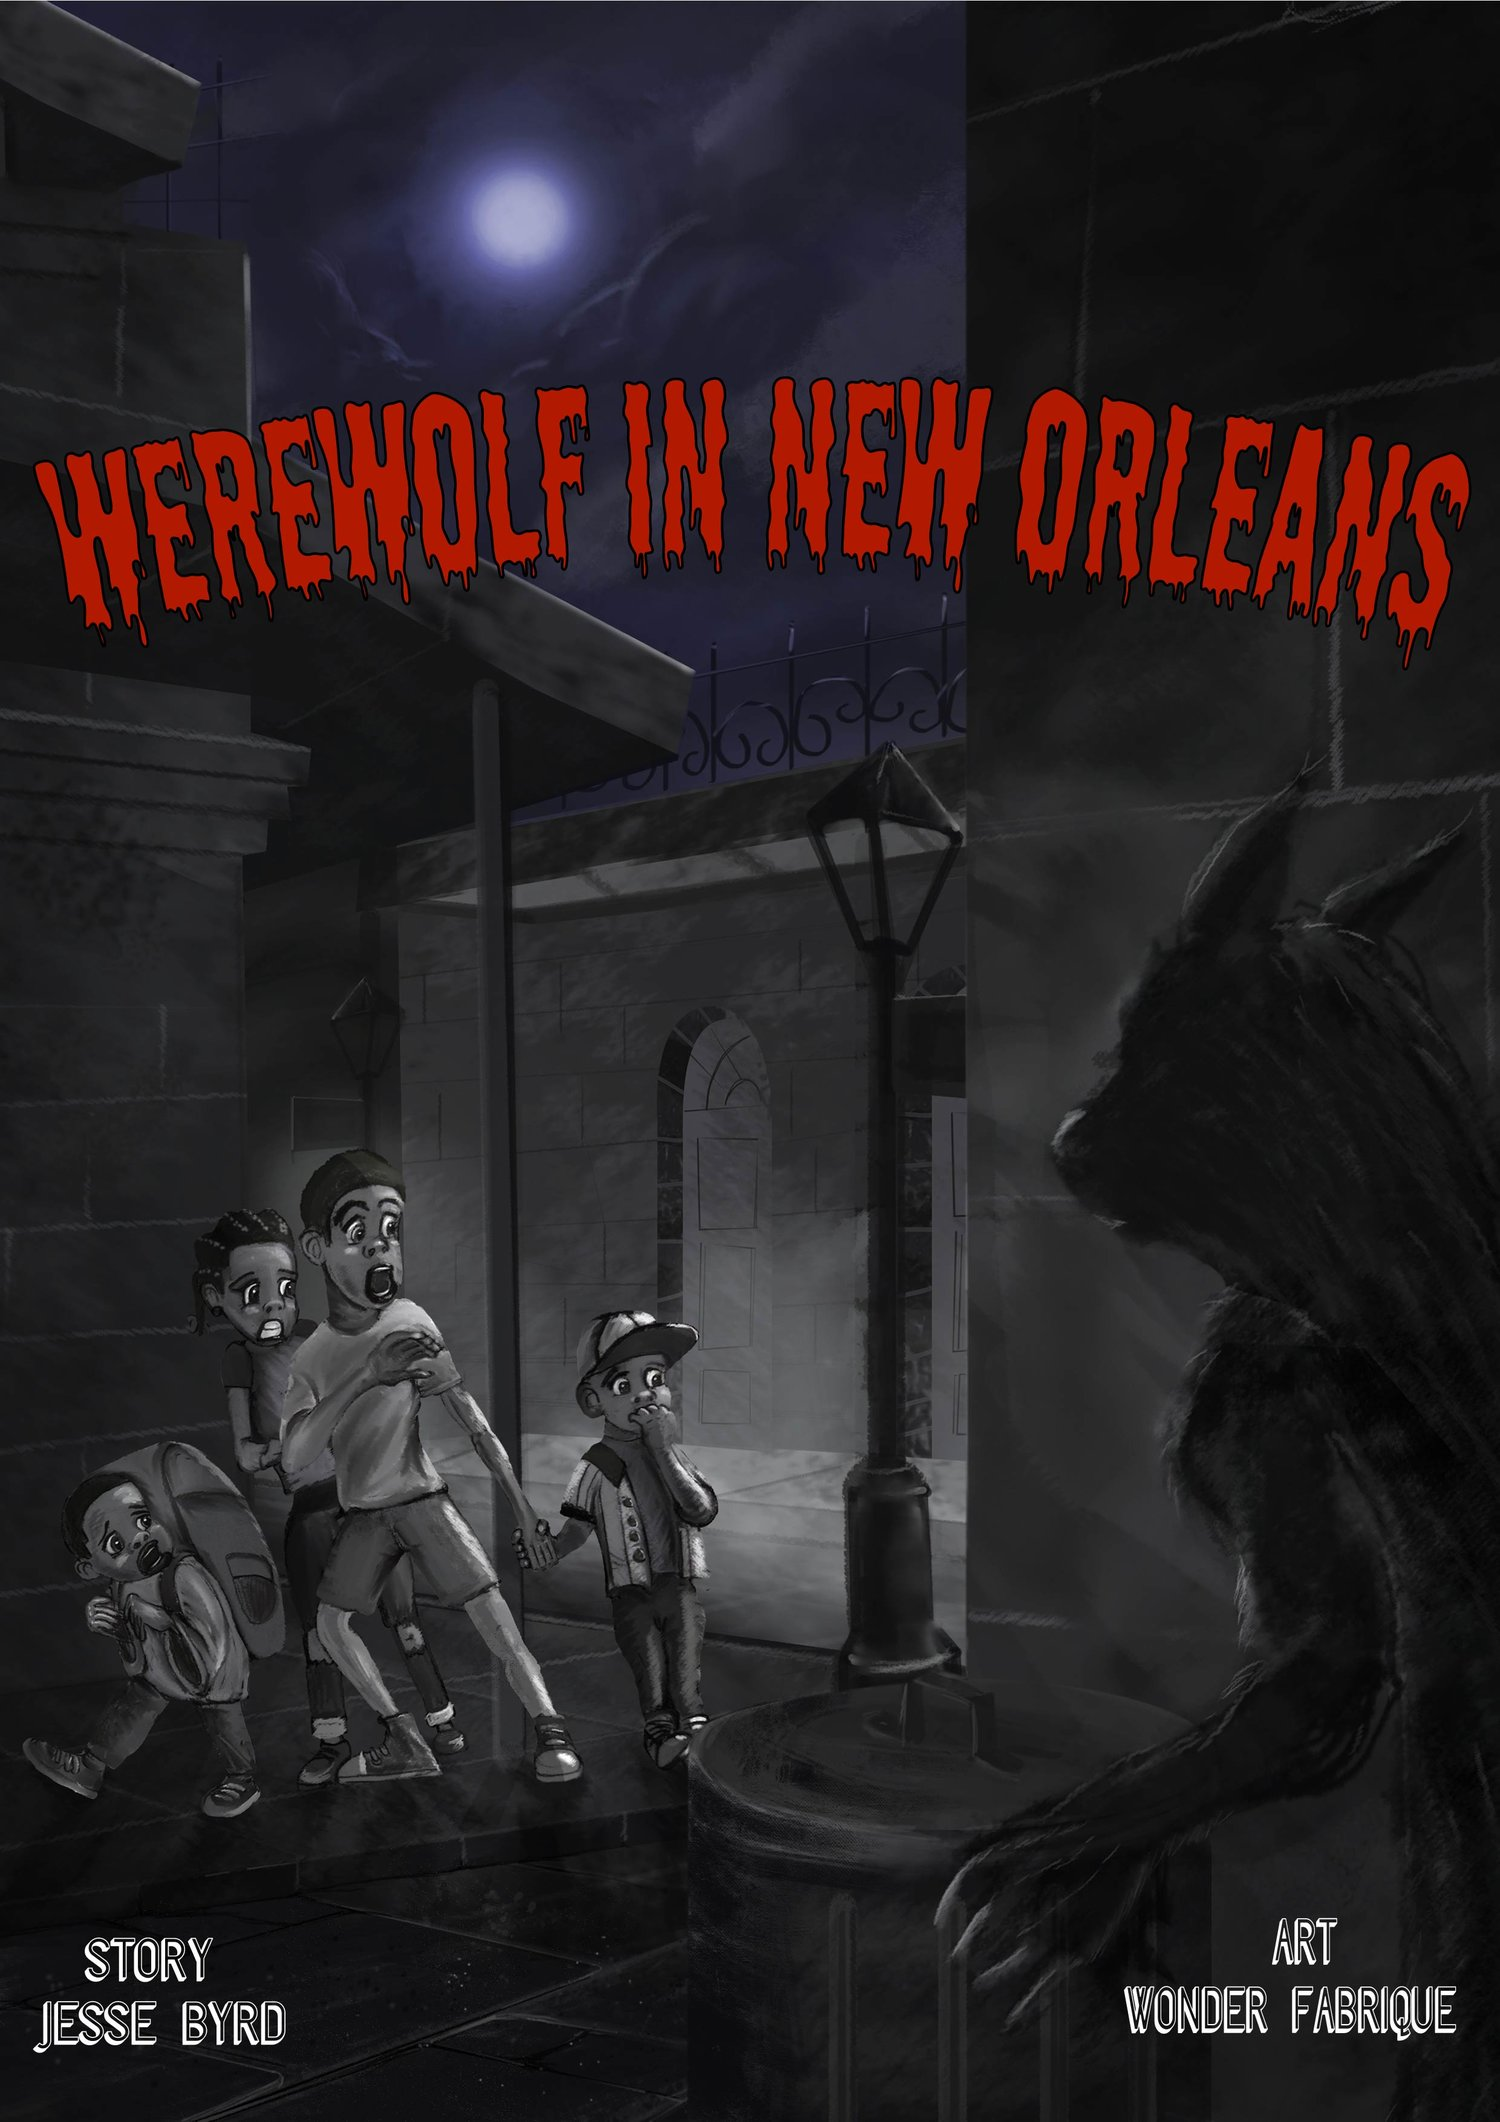 The Real Story Of New Orleans And Its >> Episode 1 Werewolf In New Orleans Monsters Are Real Series